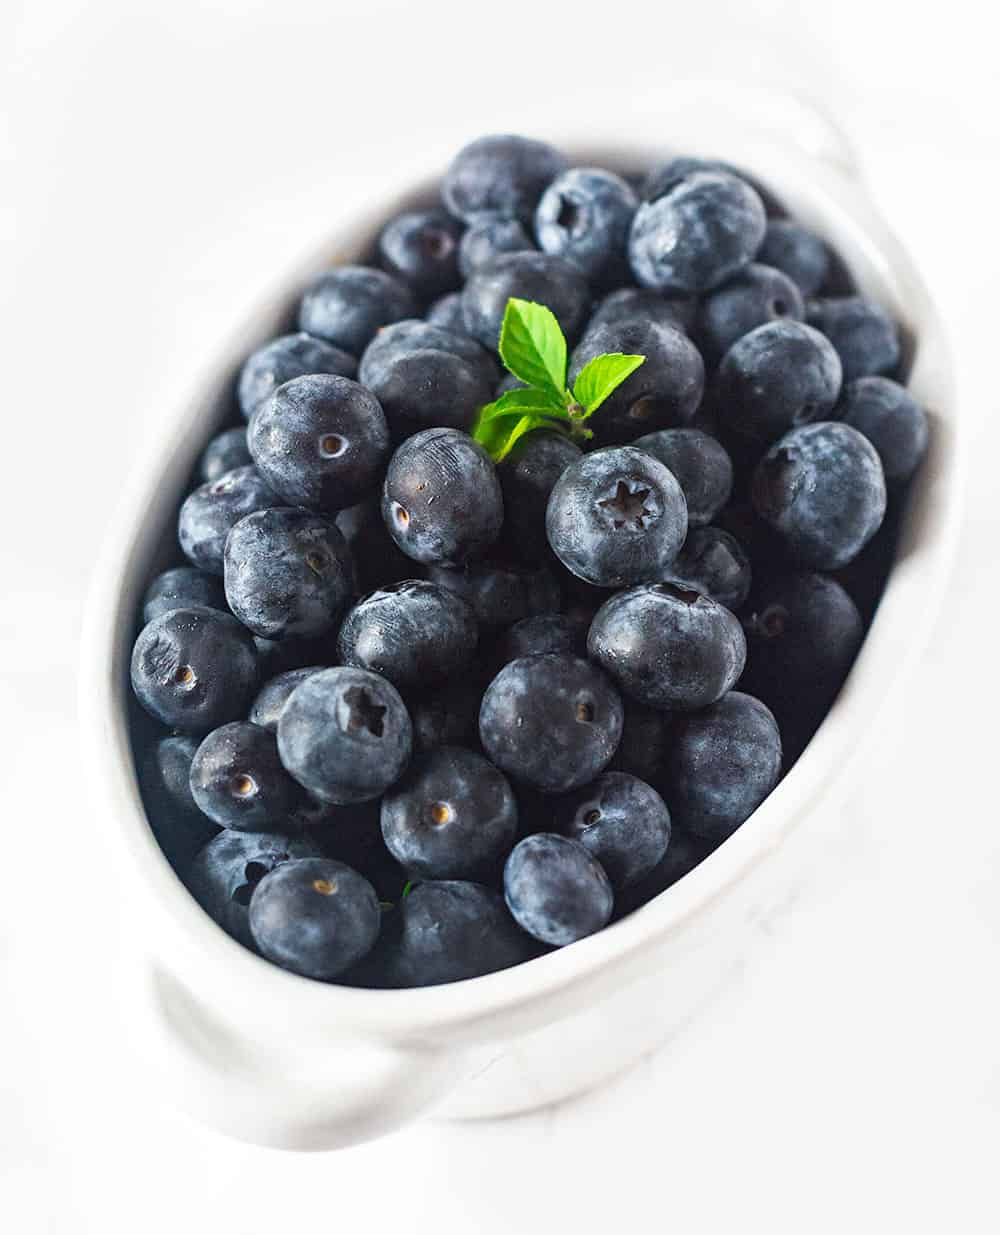 Blueberries For Blueberry Banana Smoothie in a white bowl